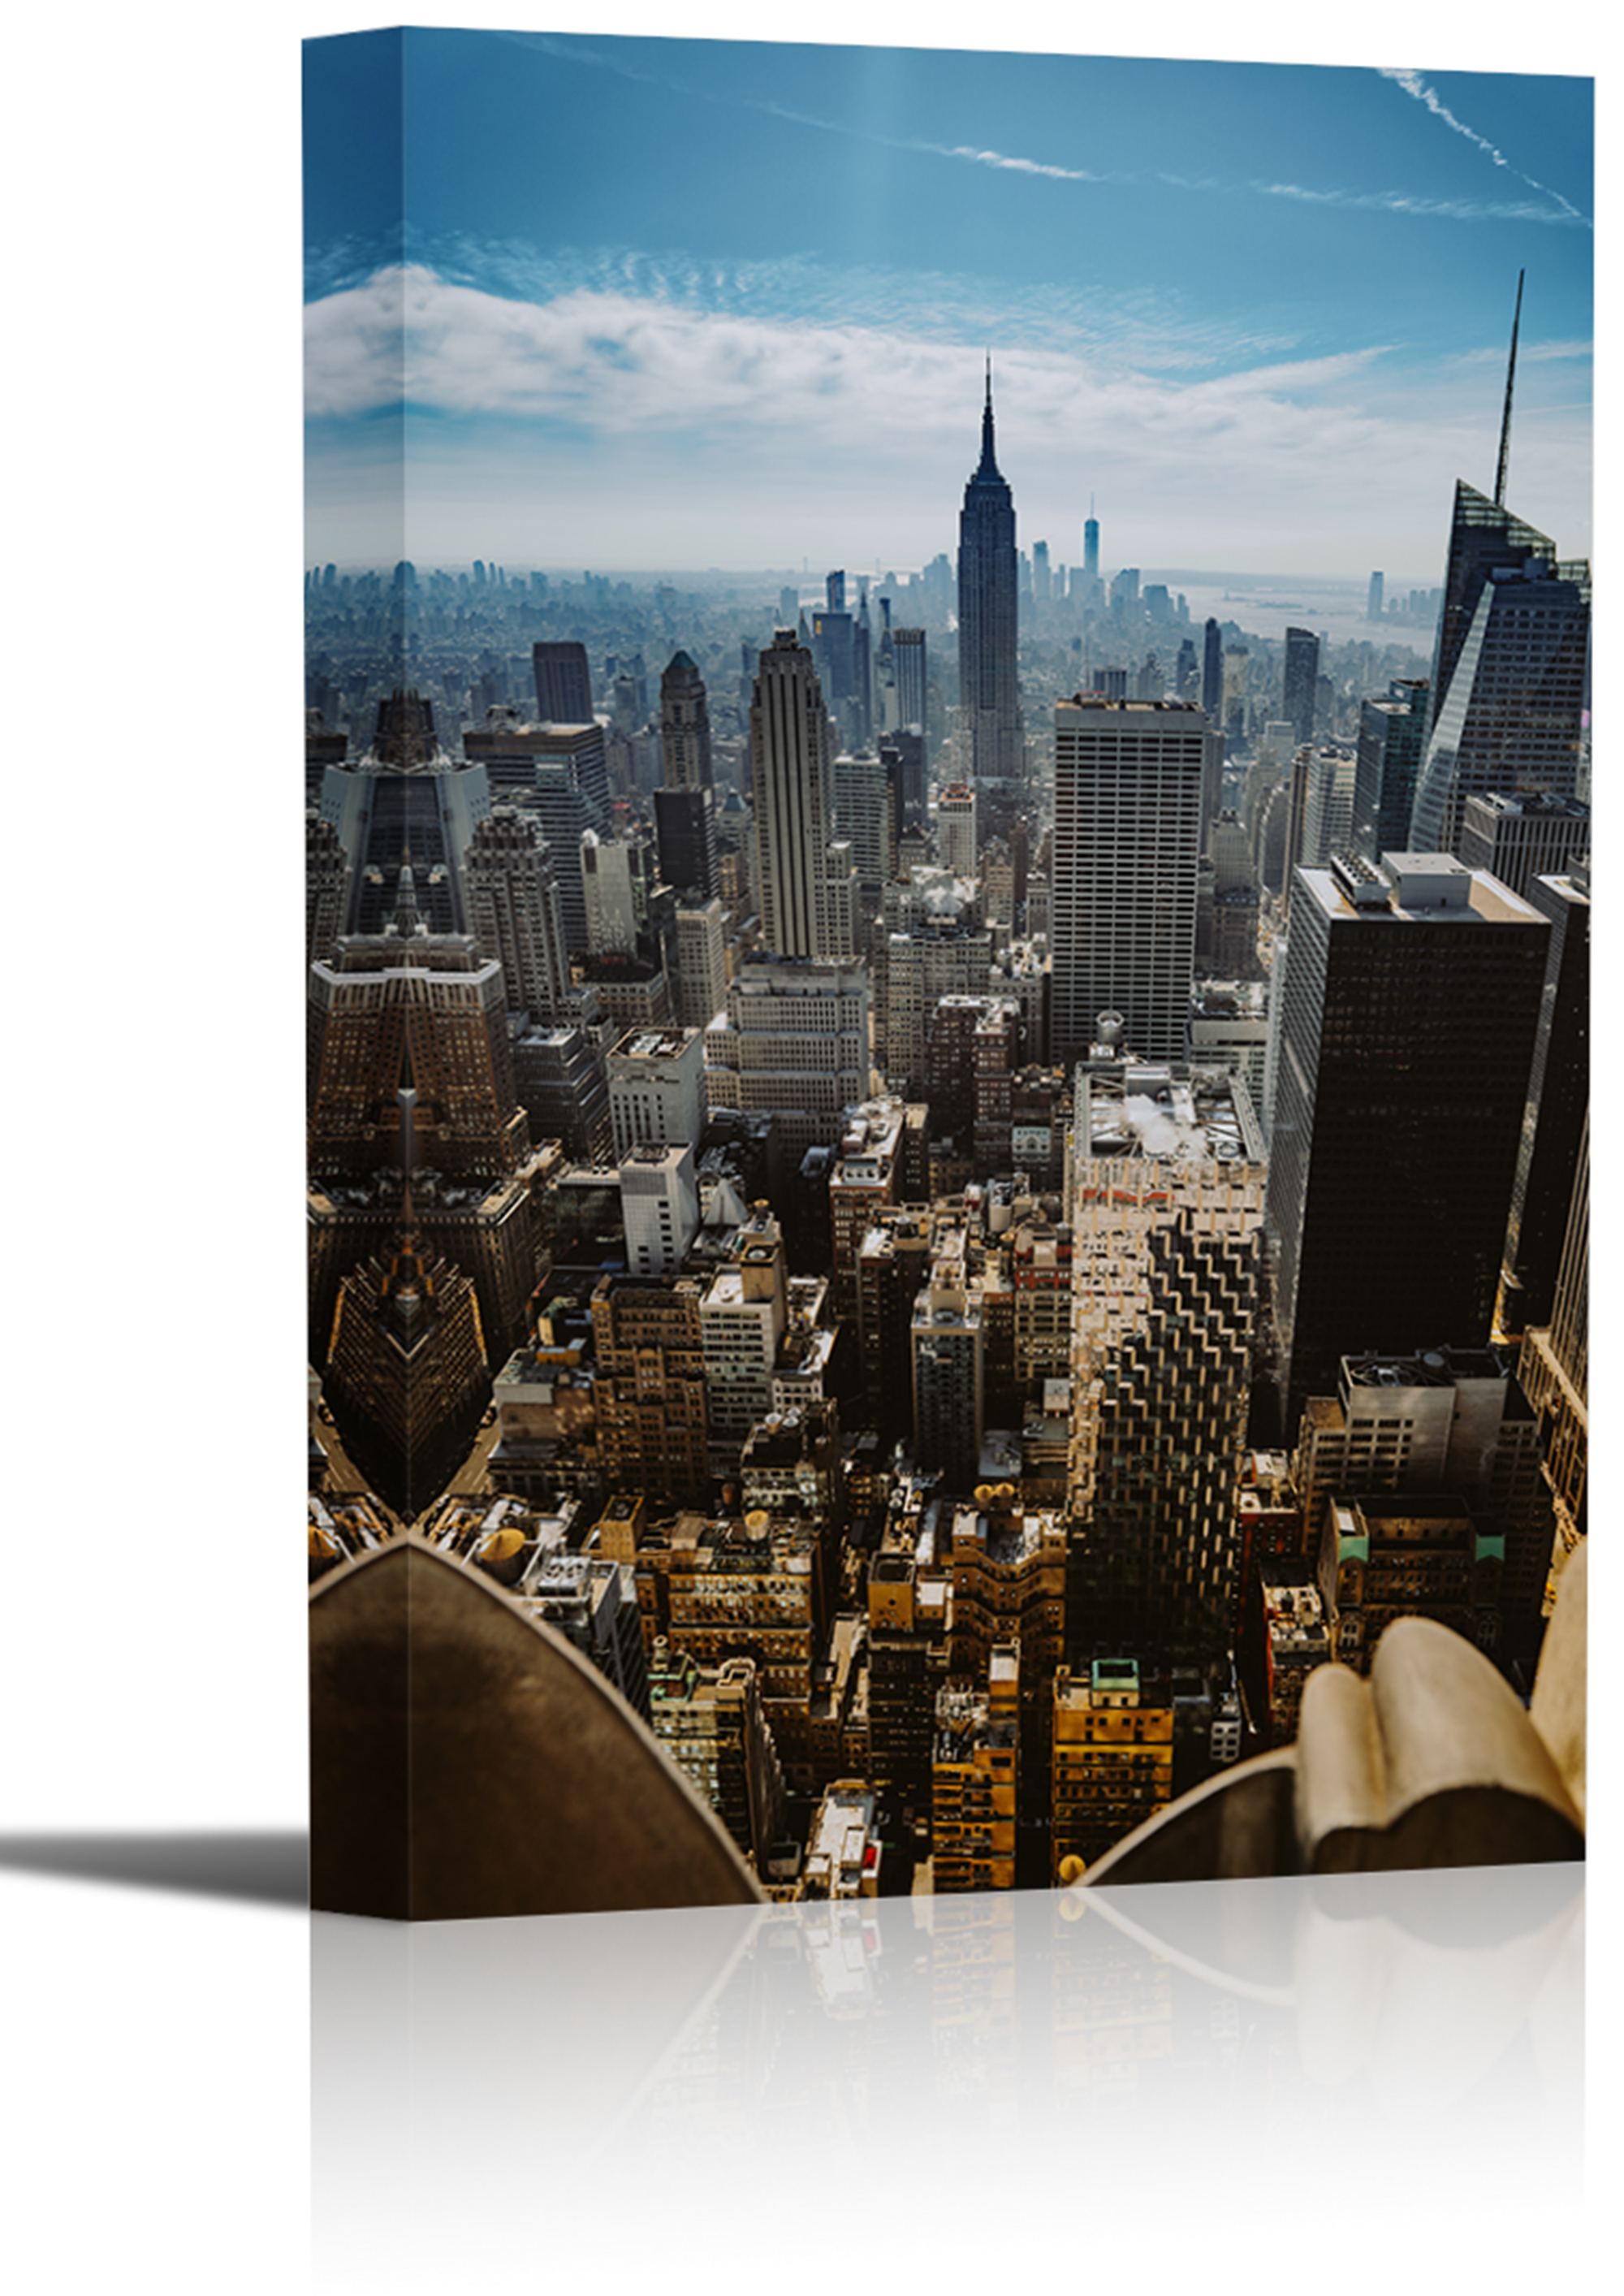 Top Of The Rock New York City Art Print Wall Decor Image Canvas Stretched Framed